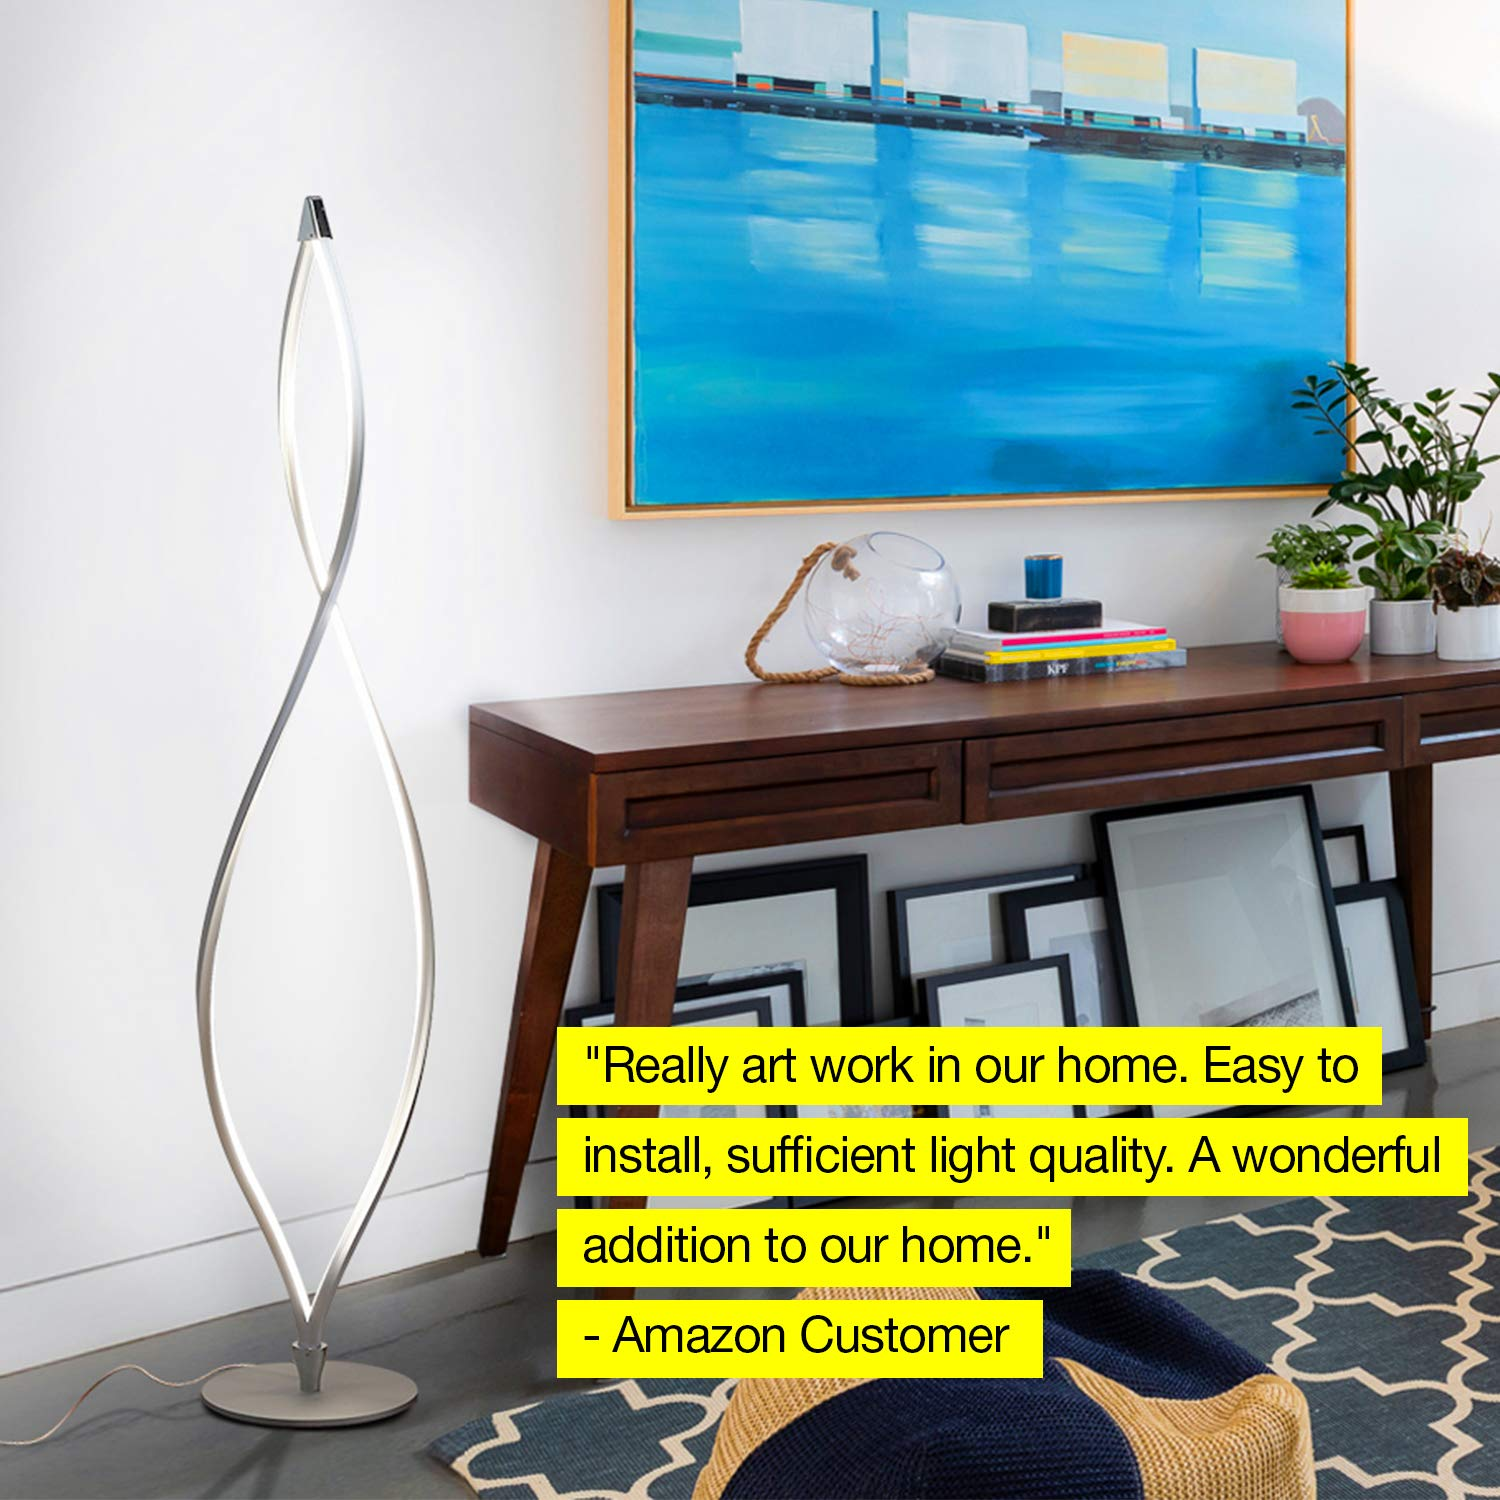 Brightech Twist - Modern LED Living Room Floor Lamp - Bright Contemporary Standing Light - Built in Dimmer Switch with 3 Brightness Settings - Cool, Futuristic Lighting - Silver by Brightech (Image #7)